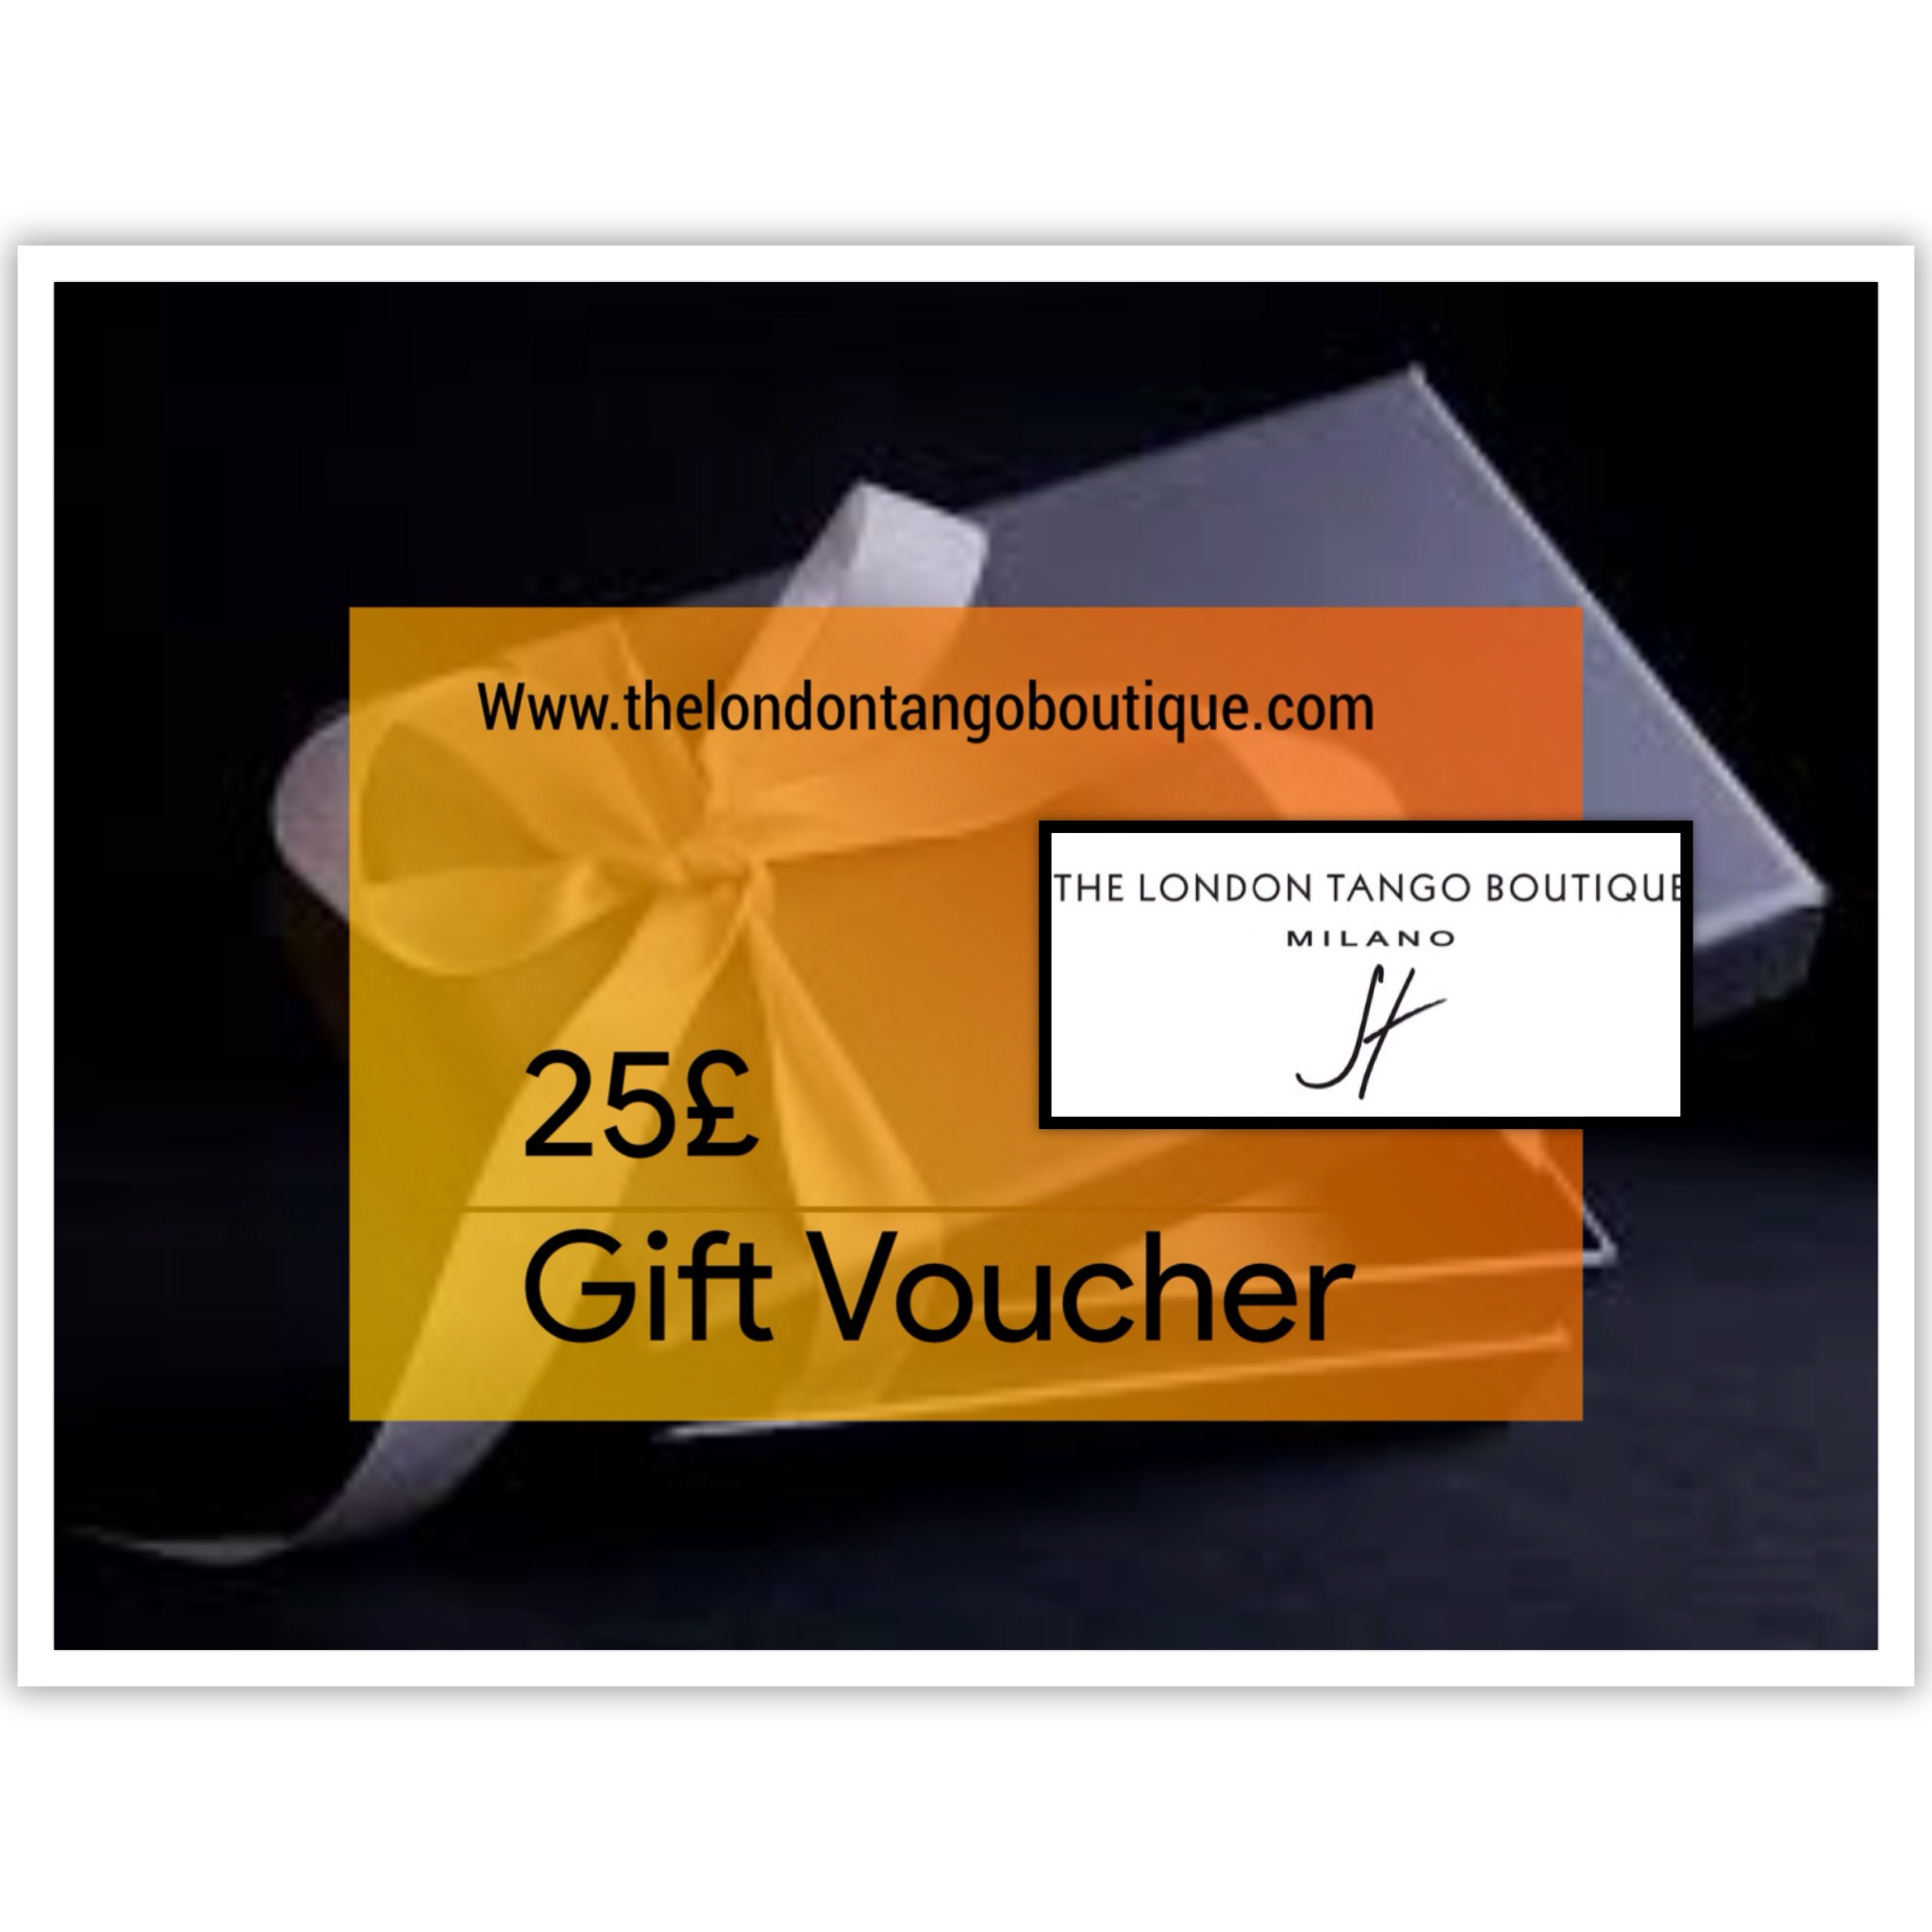 25% tango clothing gift voucher